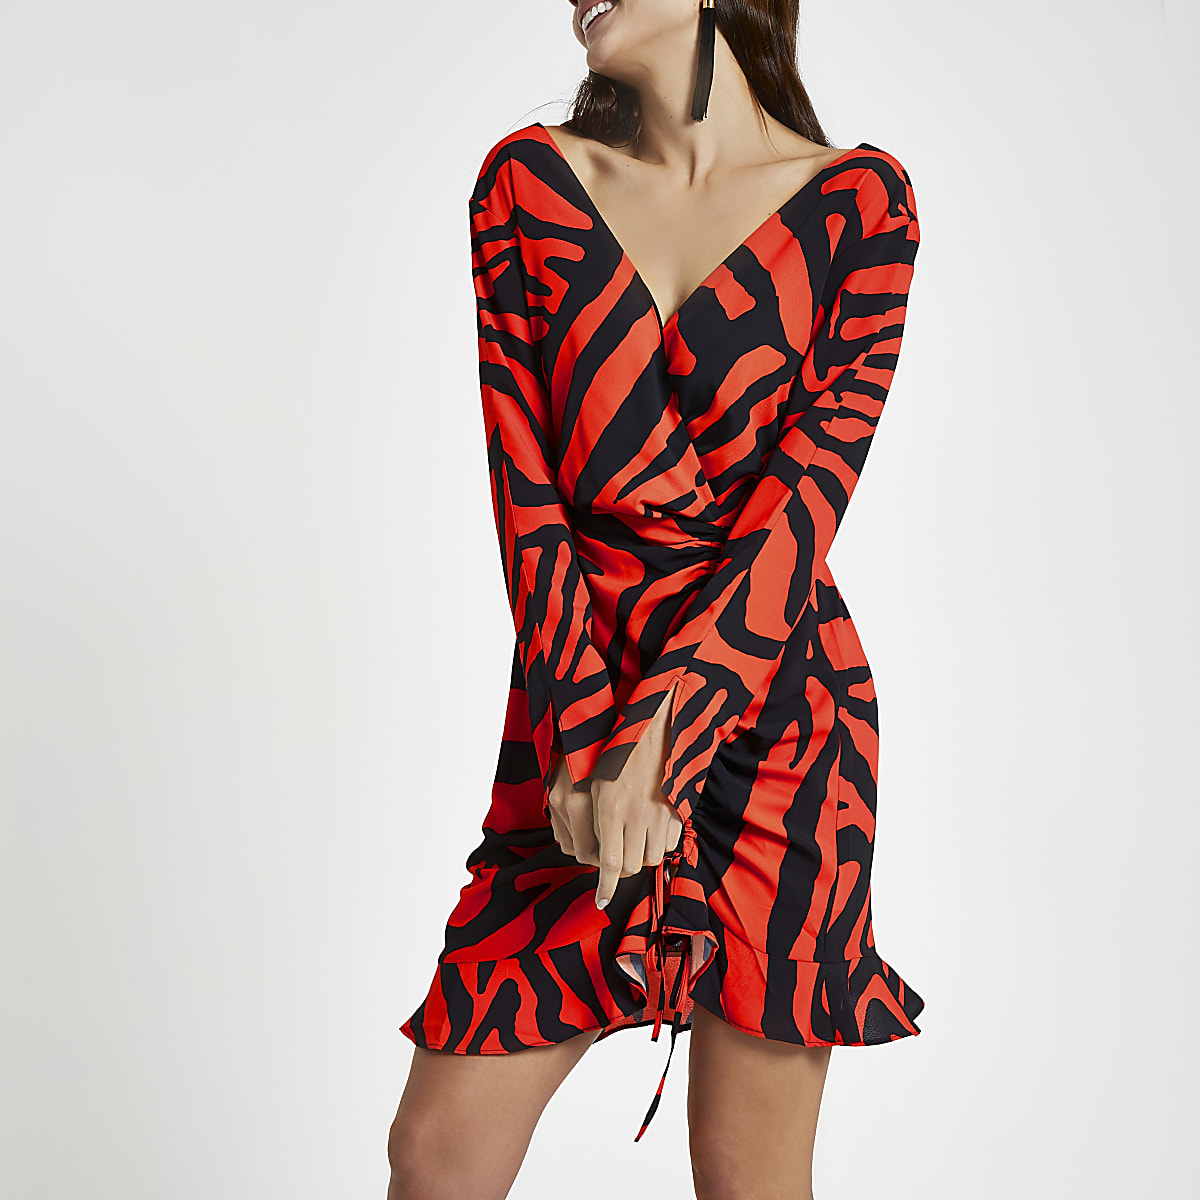 Red zebra print wrap dress